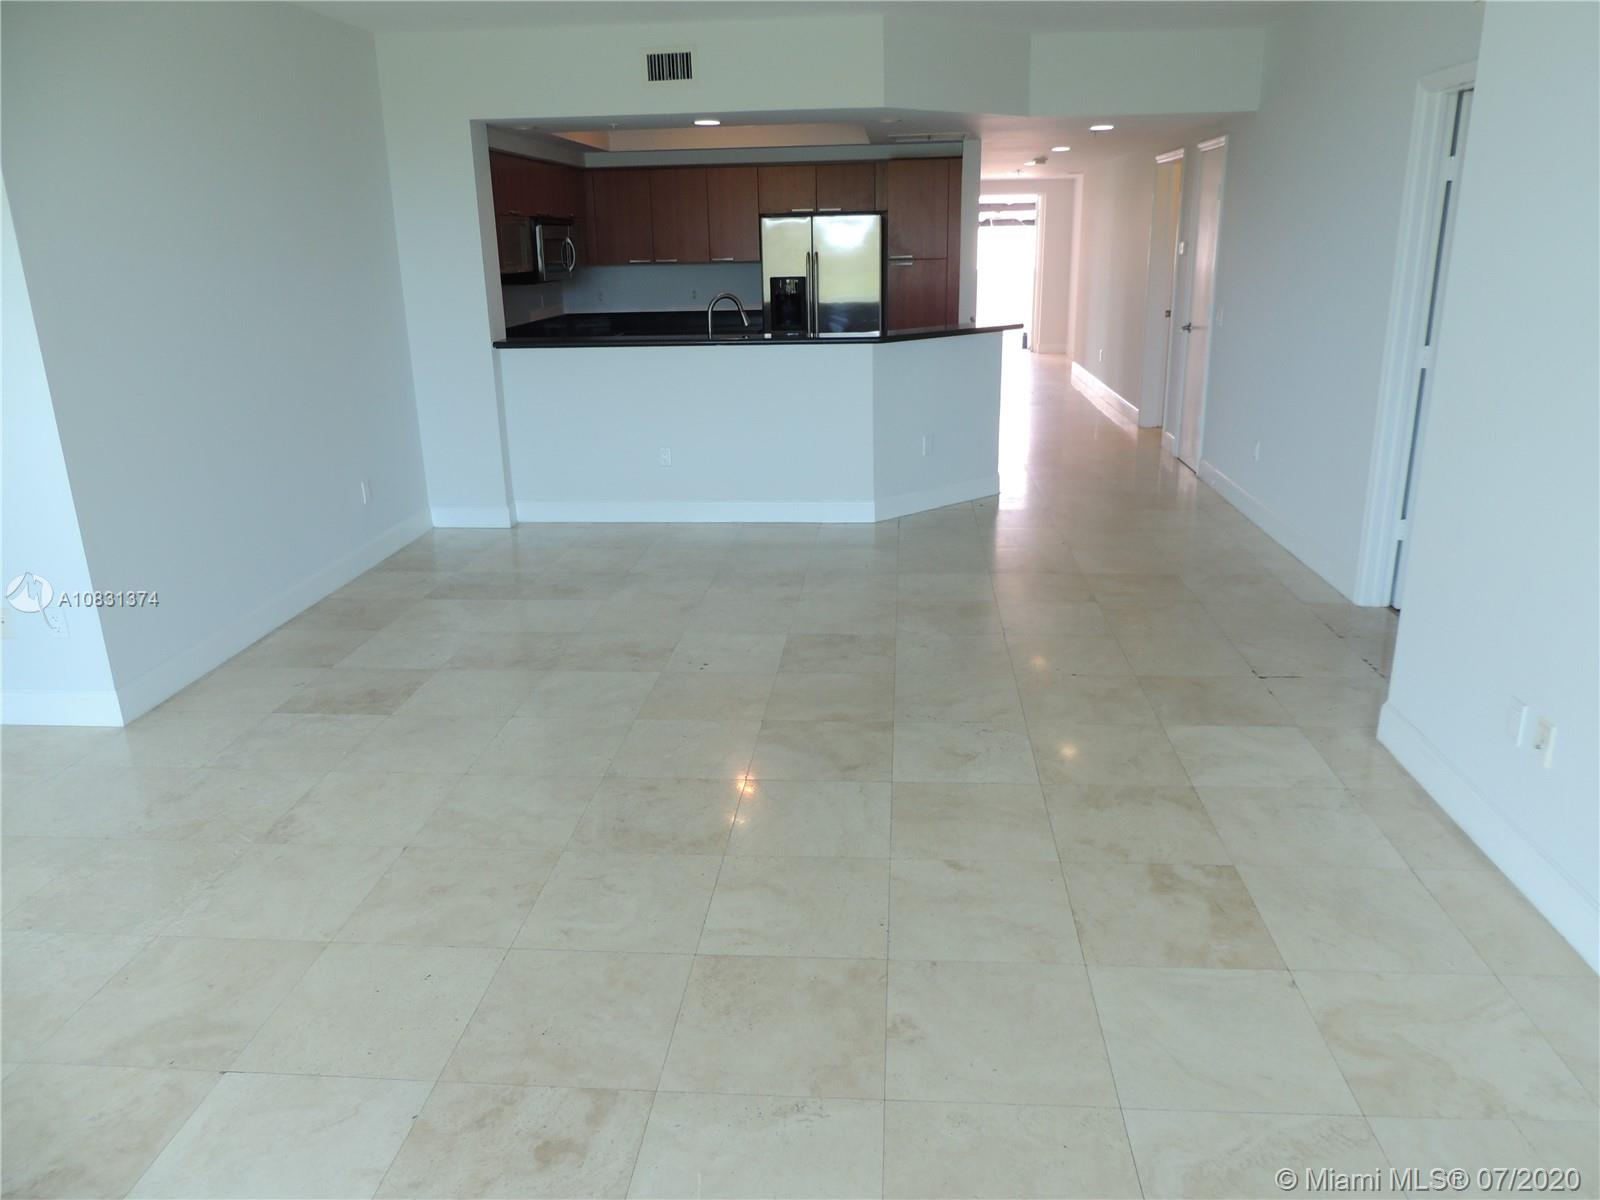 One Fifty One At Biscayne #406 - 15051 Royal Oaks Ln #406, North Miami, FL 33181